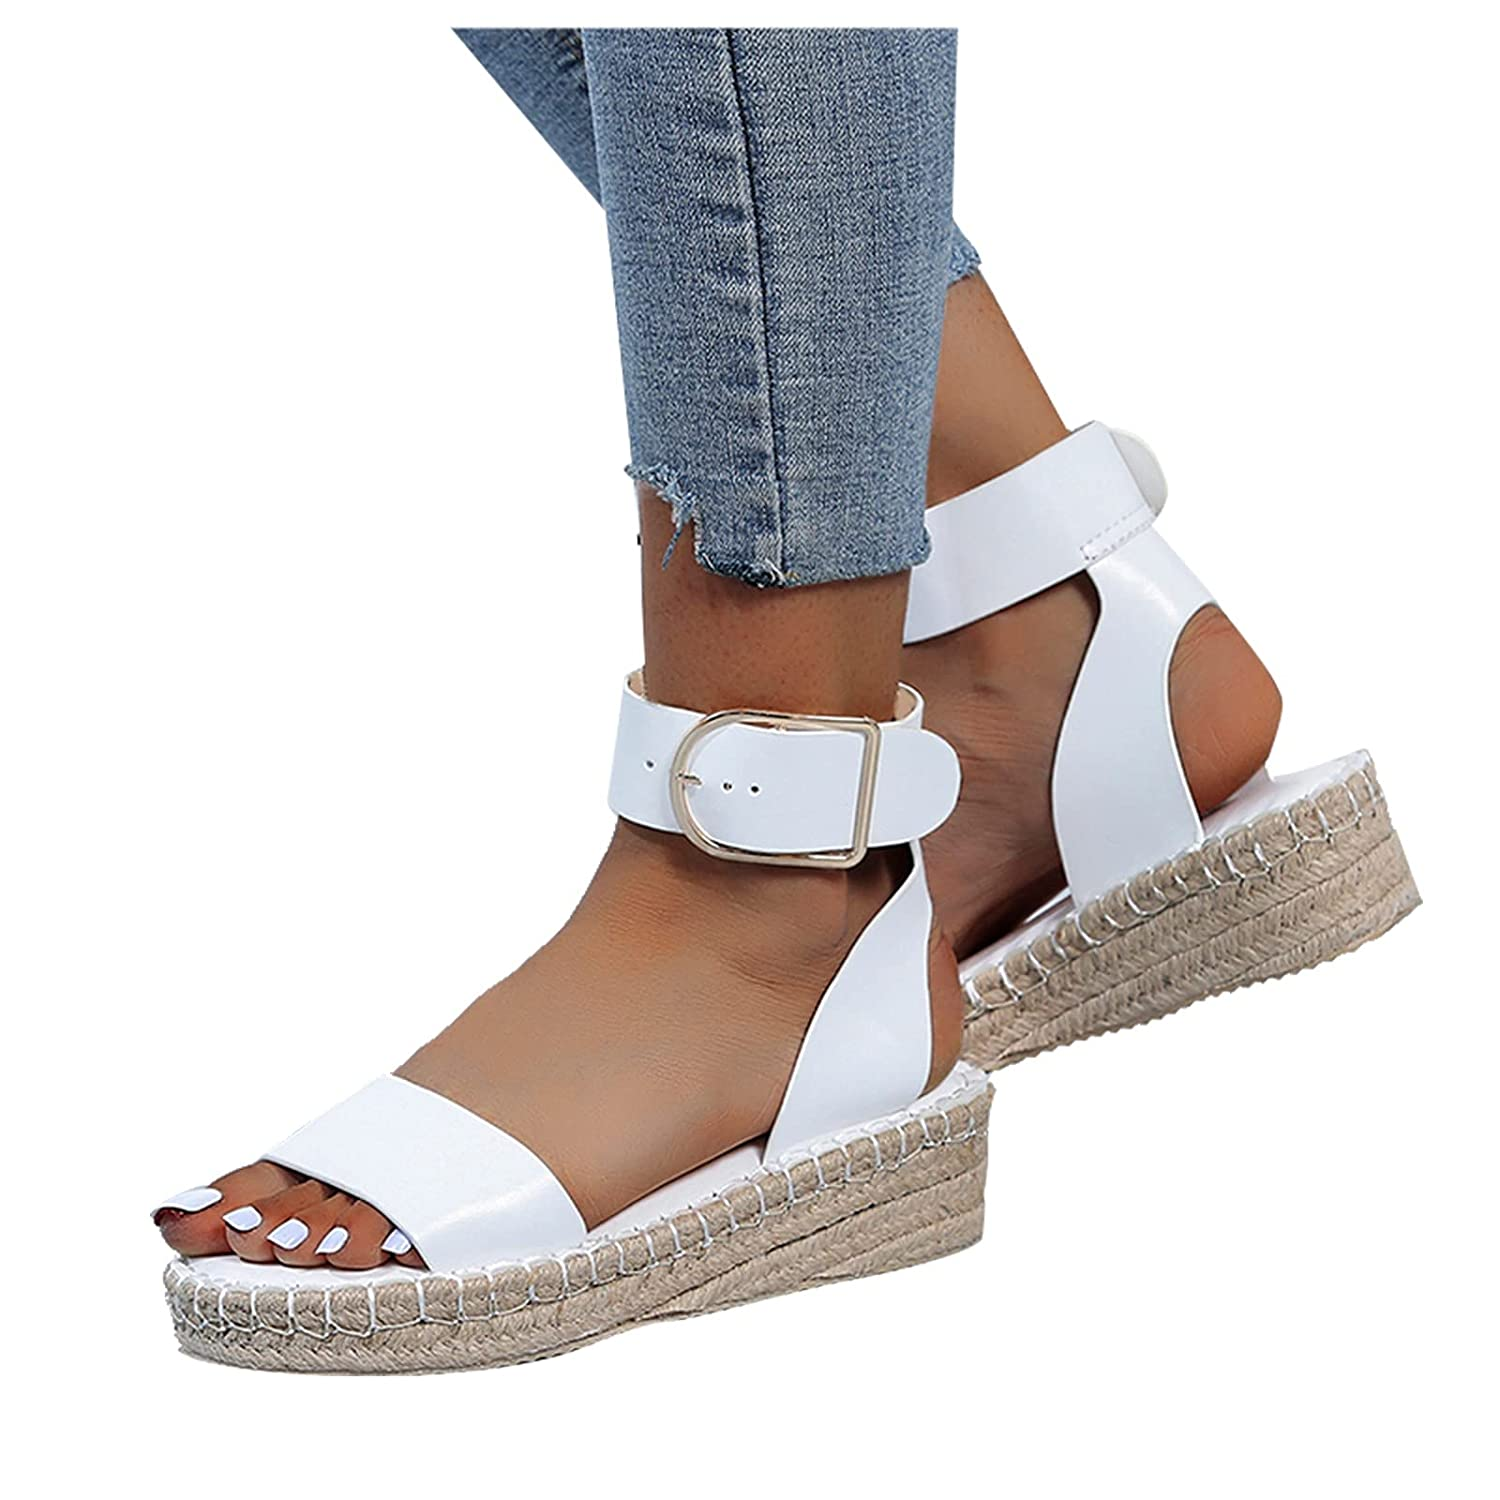 Reokoou Women's Platform Sandals Espadrille Wedges B Strap ! Super beauty product restock quality top! Ankle Max 60% OFF